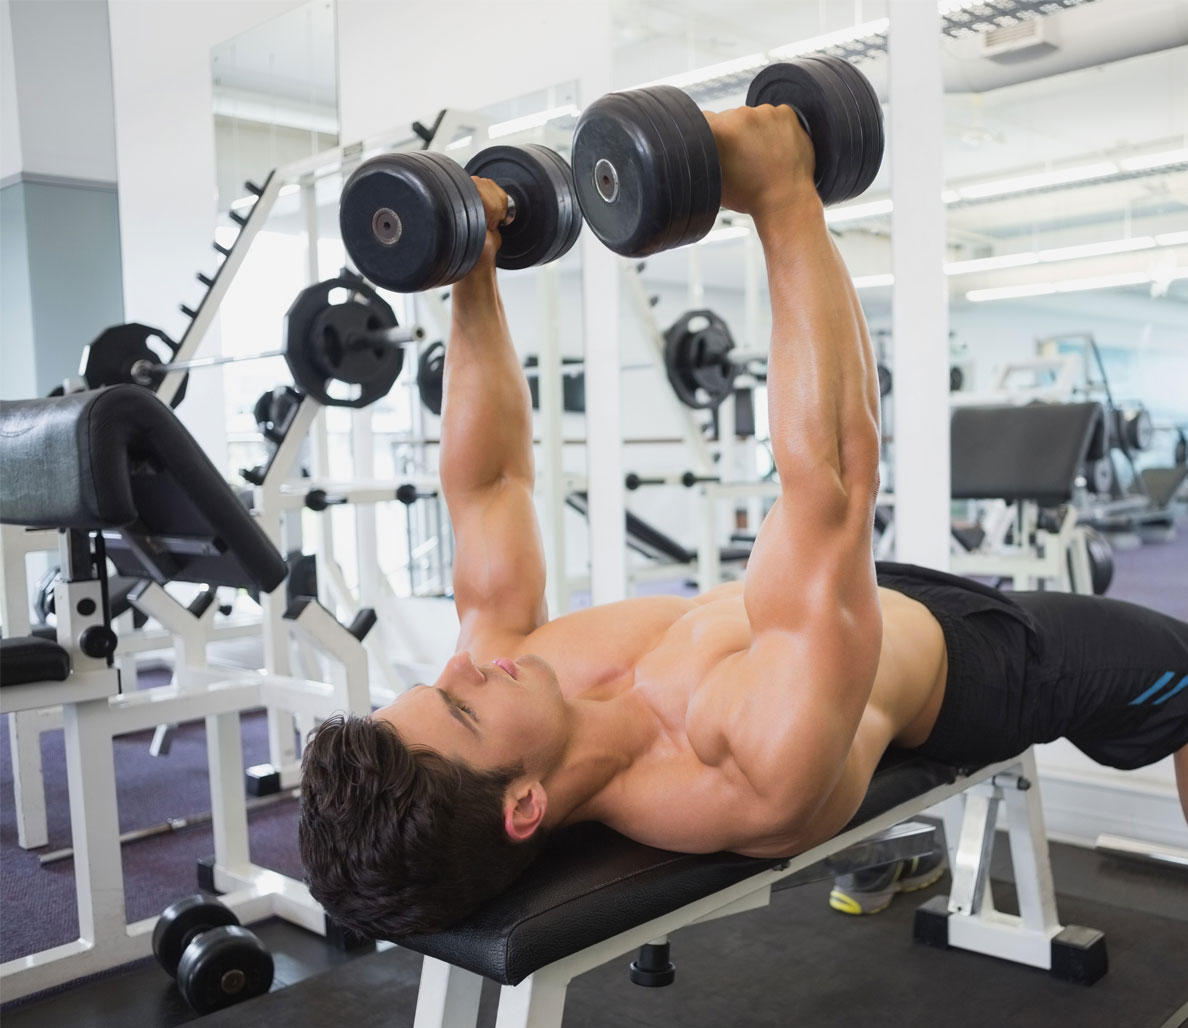 8 Golds Gym Trainers Go To Bodybuilding Workouts